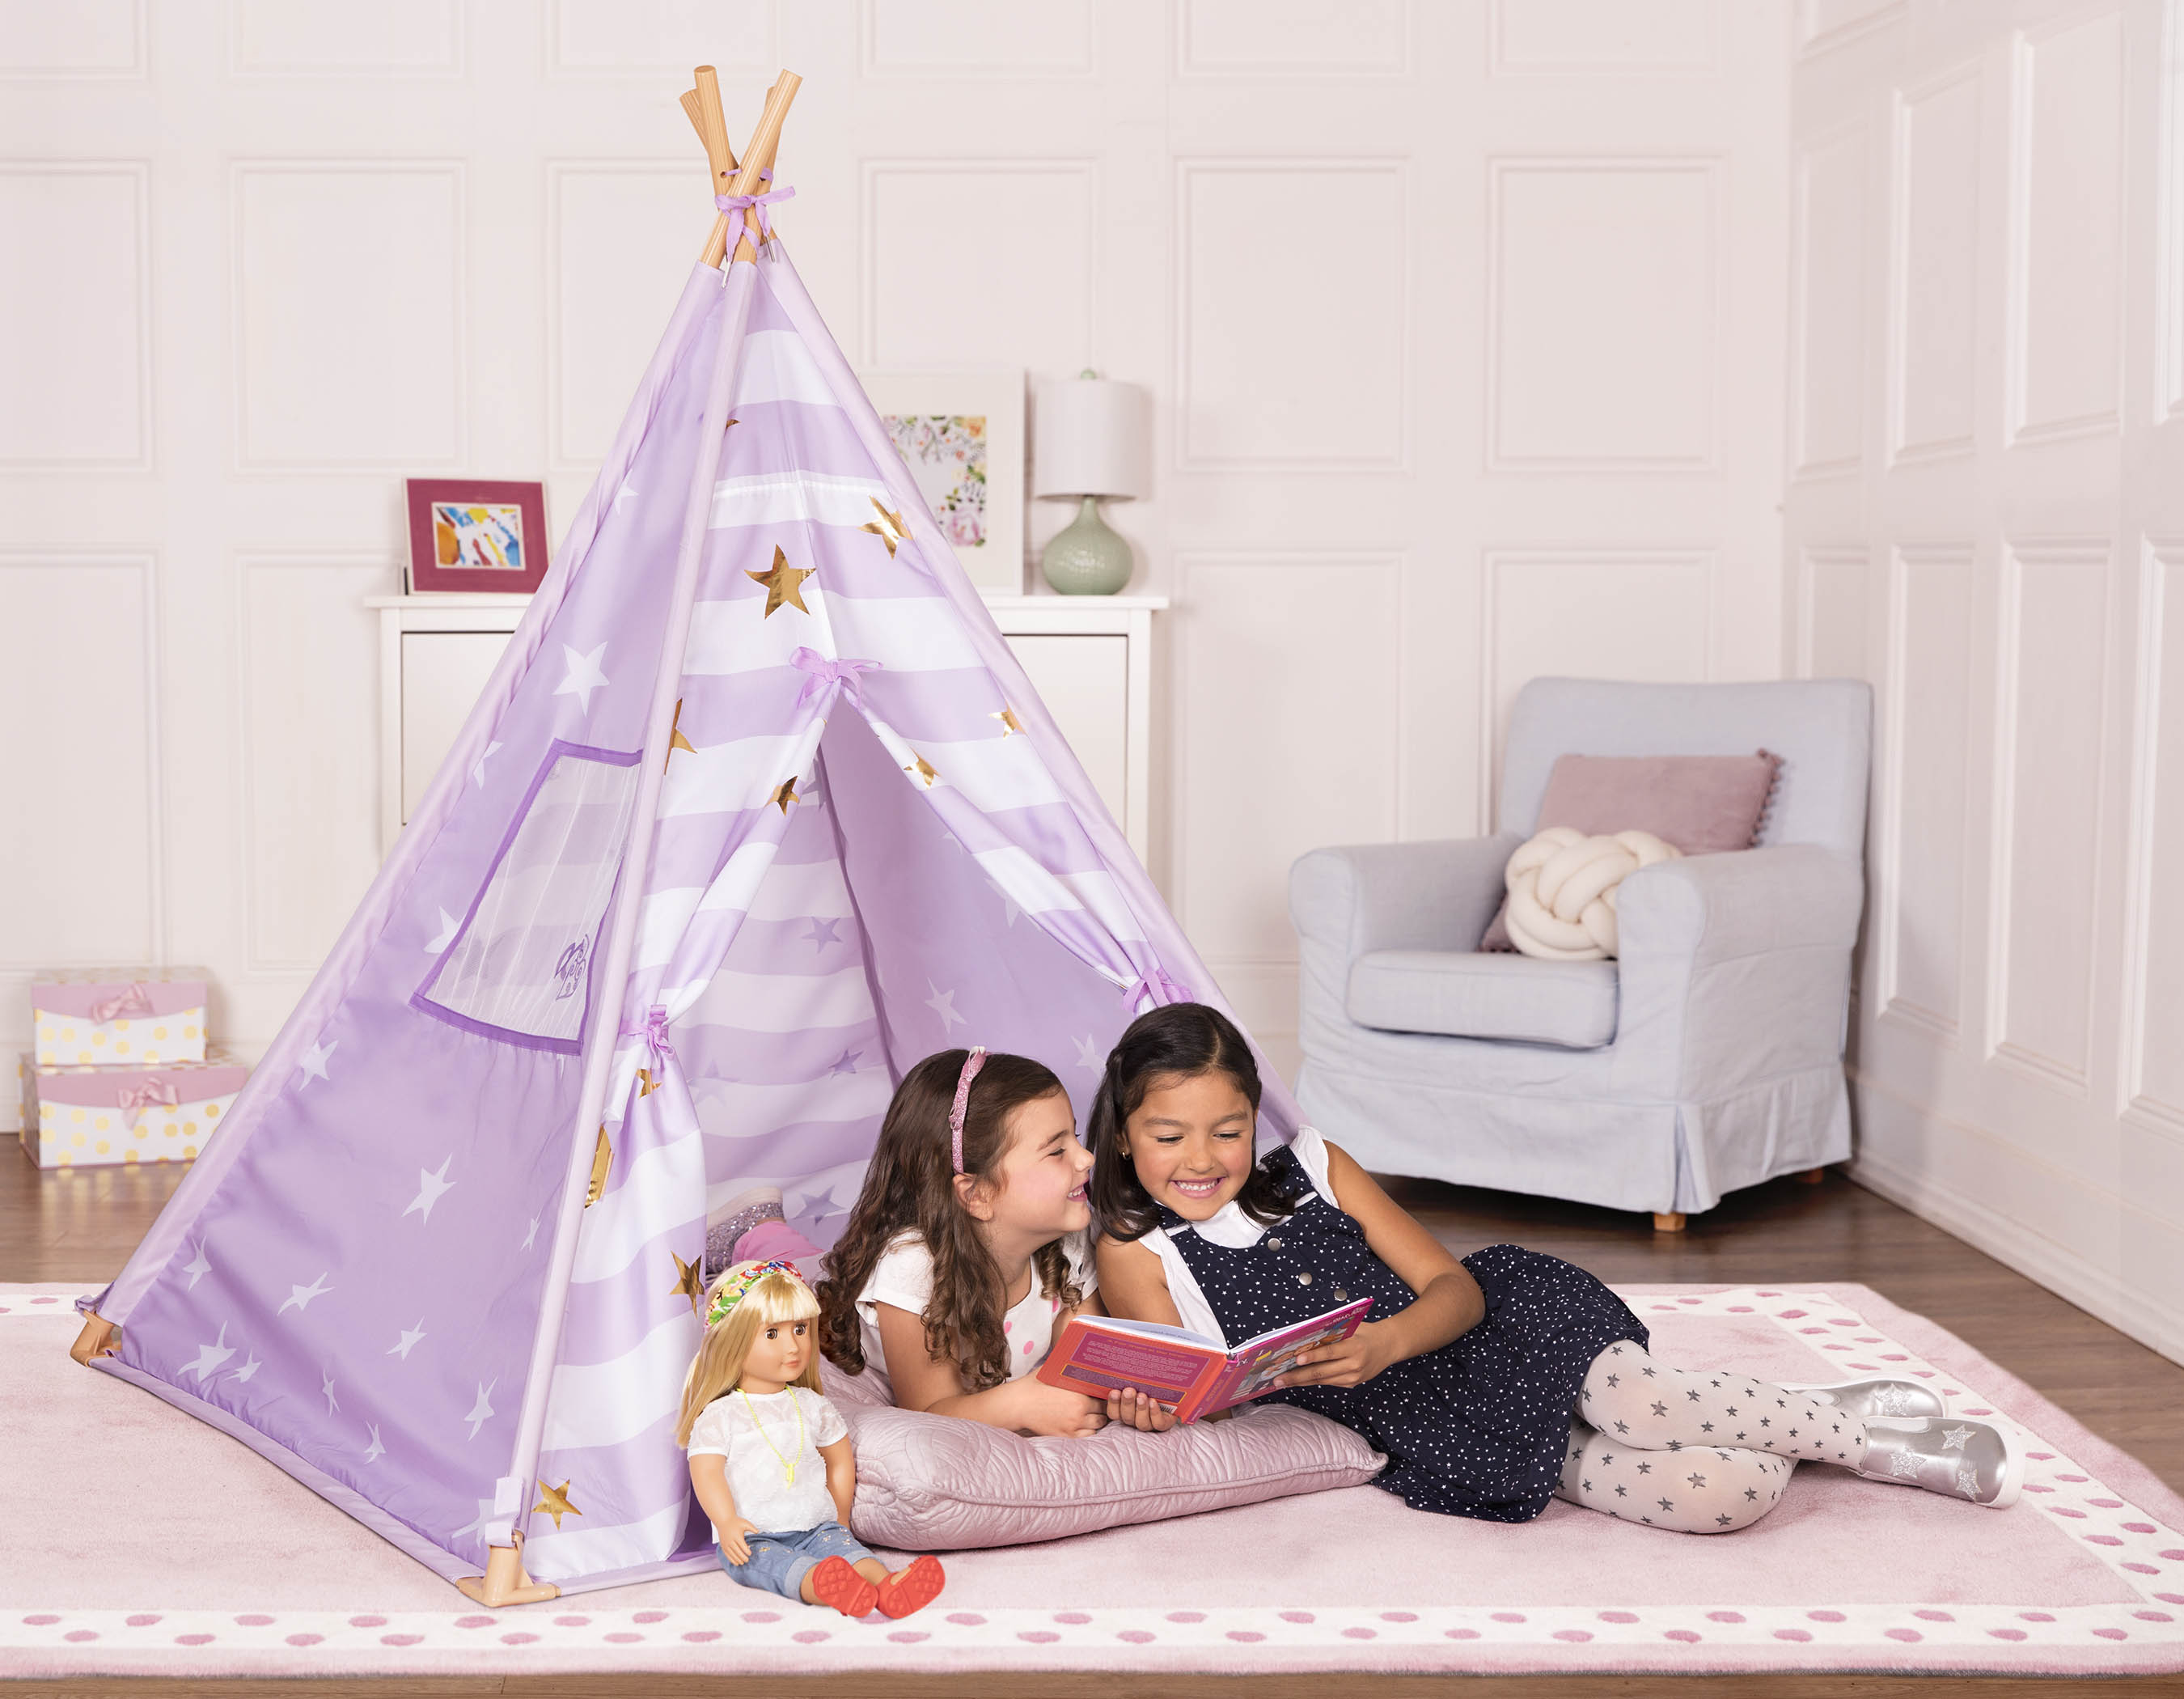 Group of Girls playing in Sleepover